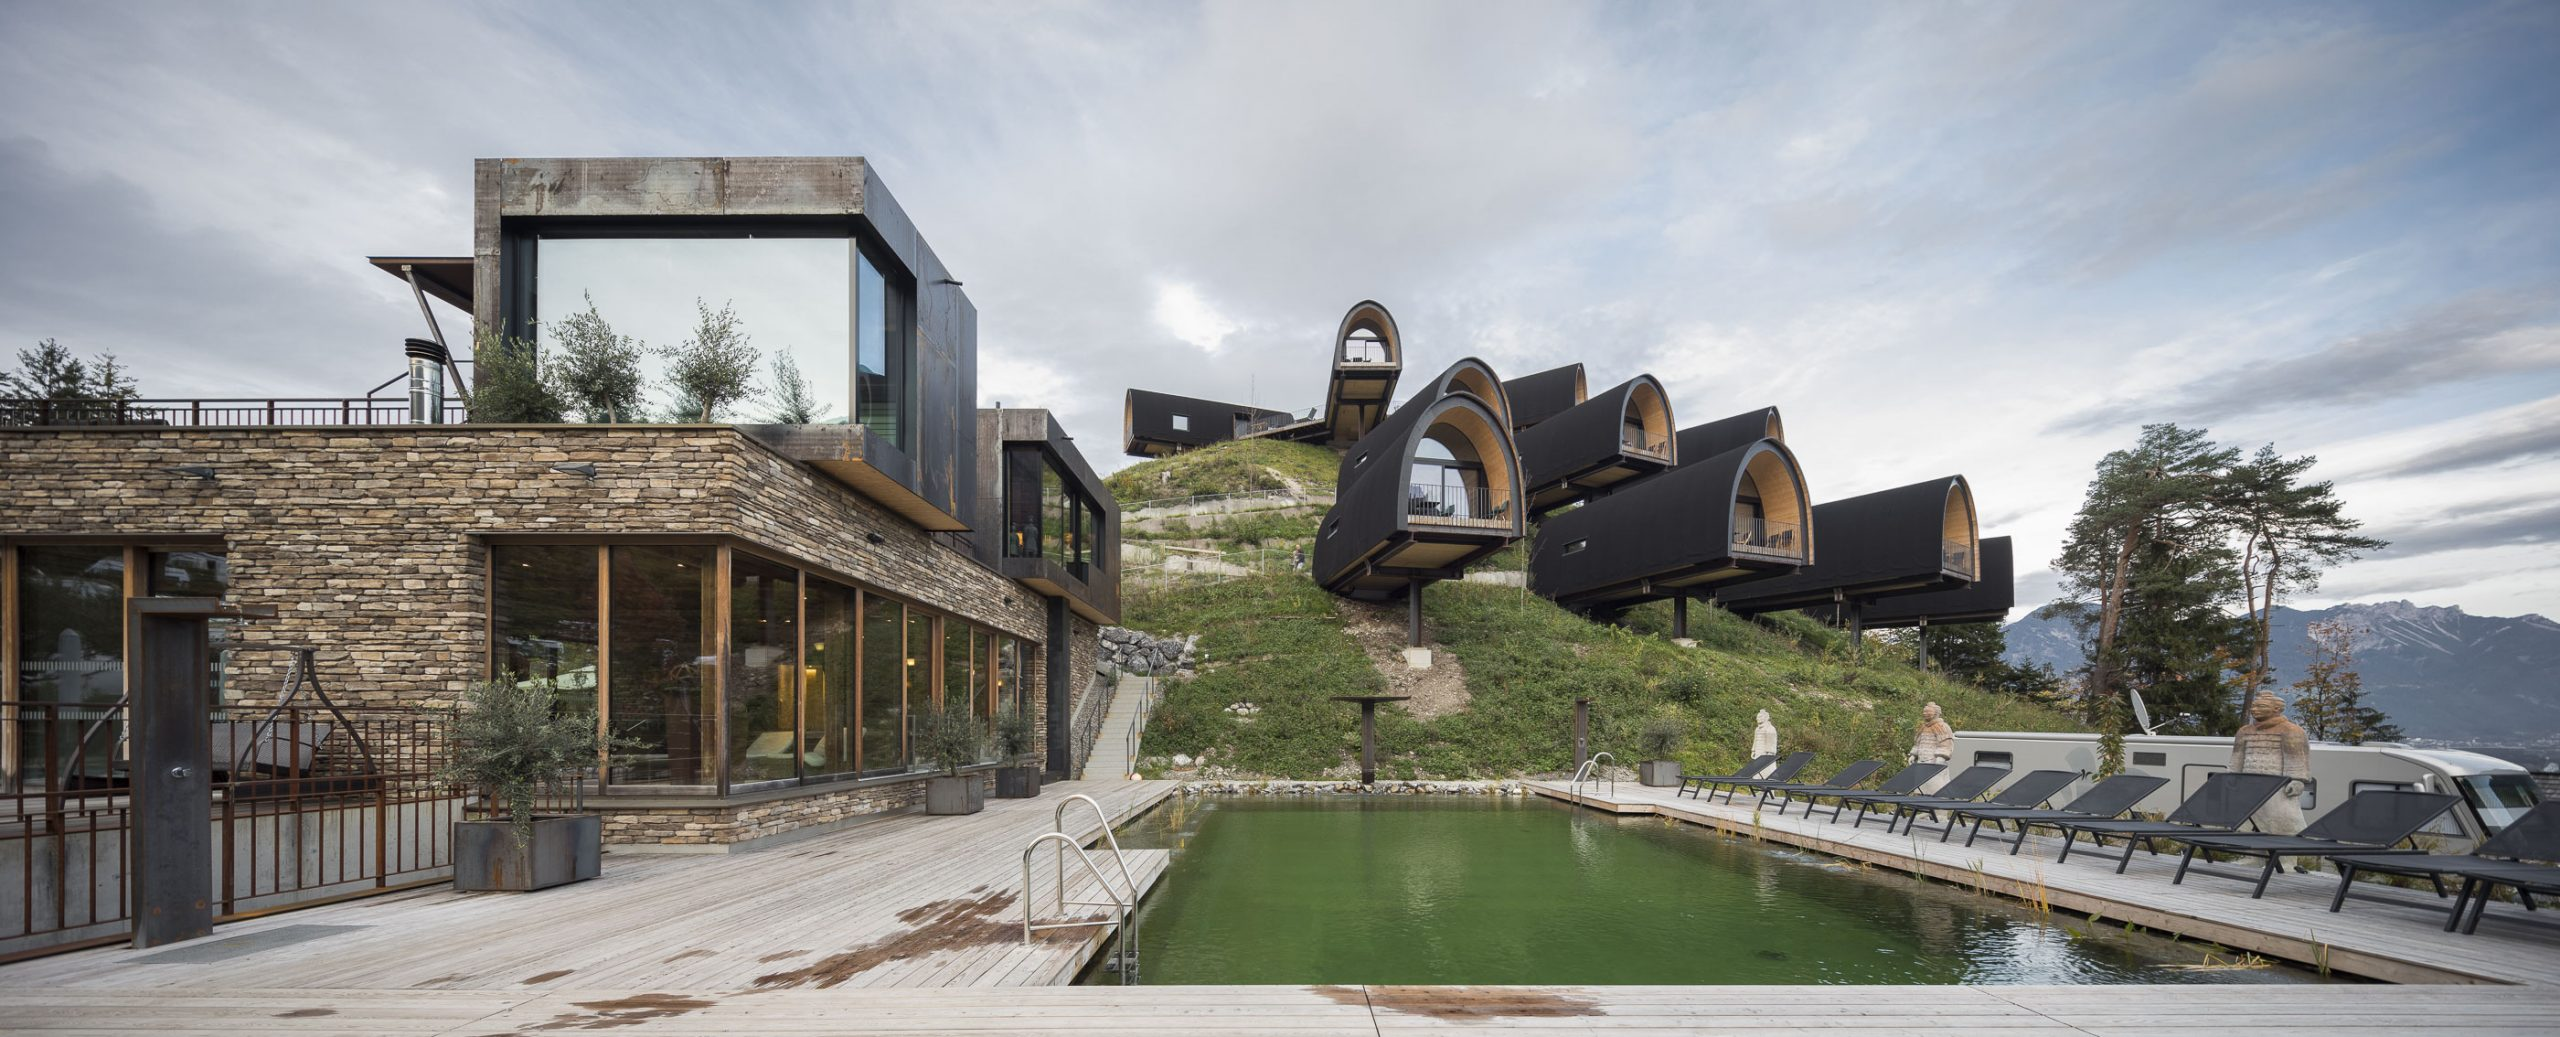 Alpencamping Nenzing | Best Architectural Designs | MUSE Design Awards